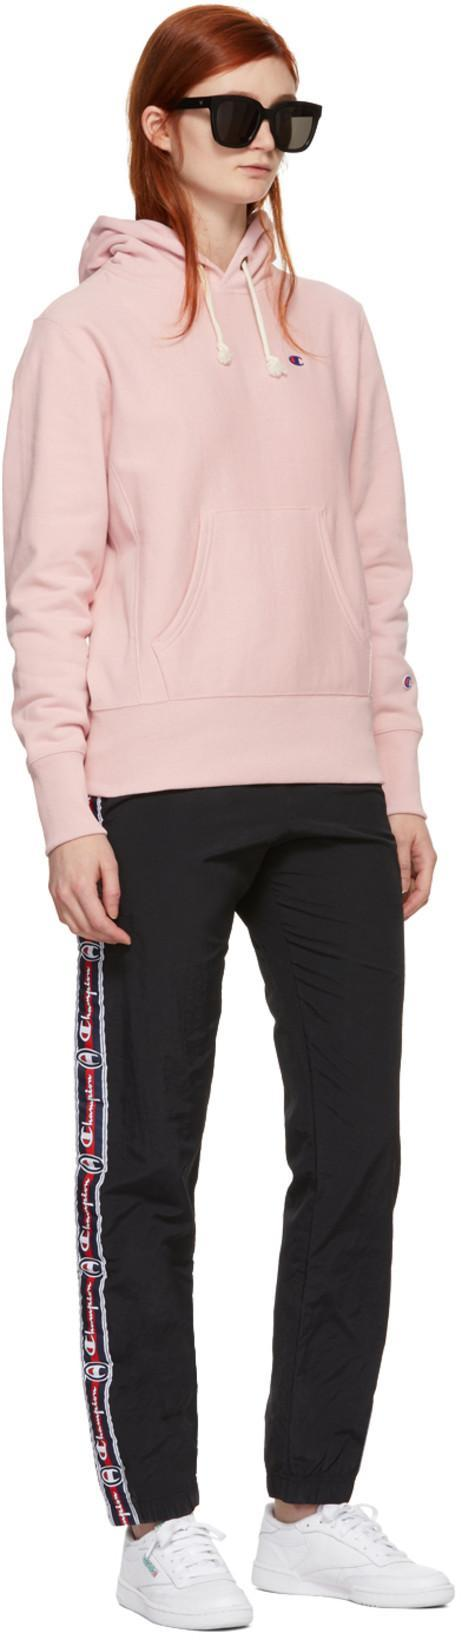 3bacc60c CHAMPION Champion Reverse Weave Pink Small Logo Warm-Up Hoodie in Cbs Ps066